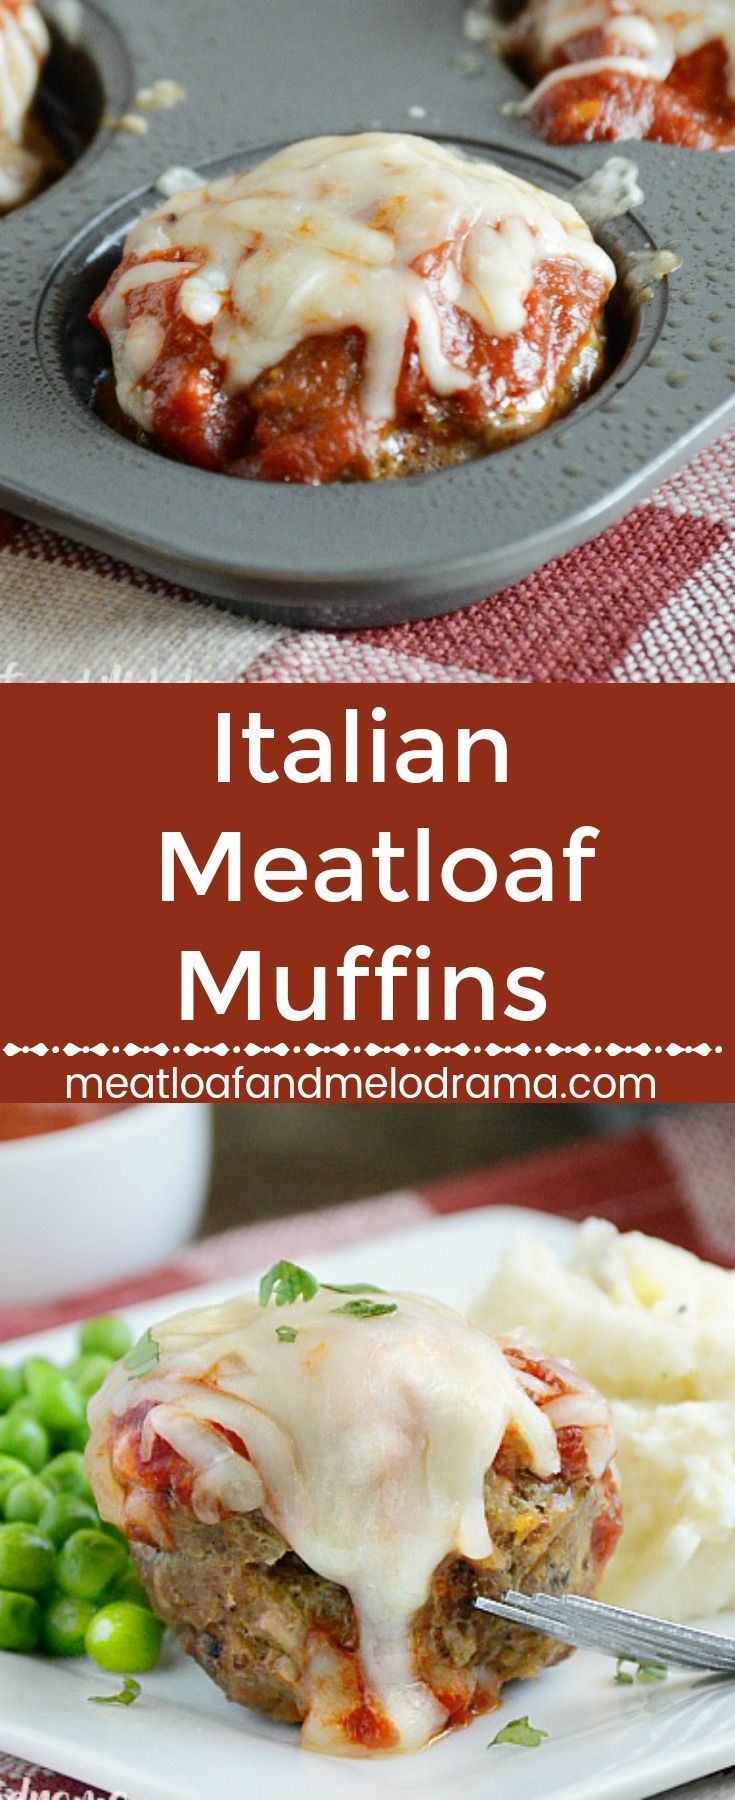 Italian Meatloaf Muffins - A quick and easy dinner! Mini meat loaves made in a muffin tin and topped with marinara sauce and mozzarella cheese. Ready in 30 minutes and perfect for busy days. #easyrecipe #quickandeasydinner #comfortfood